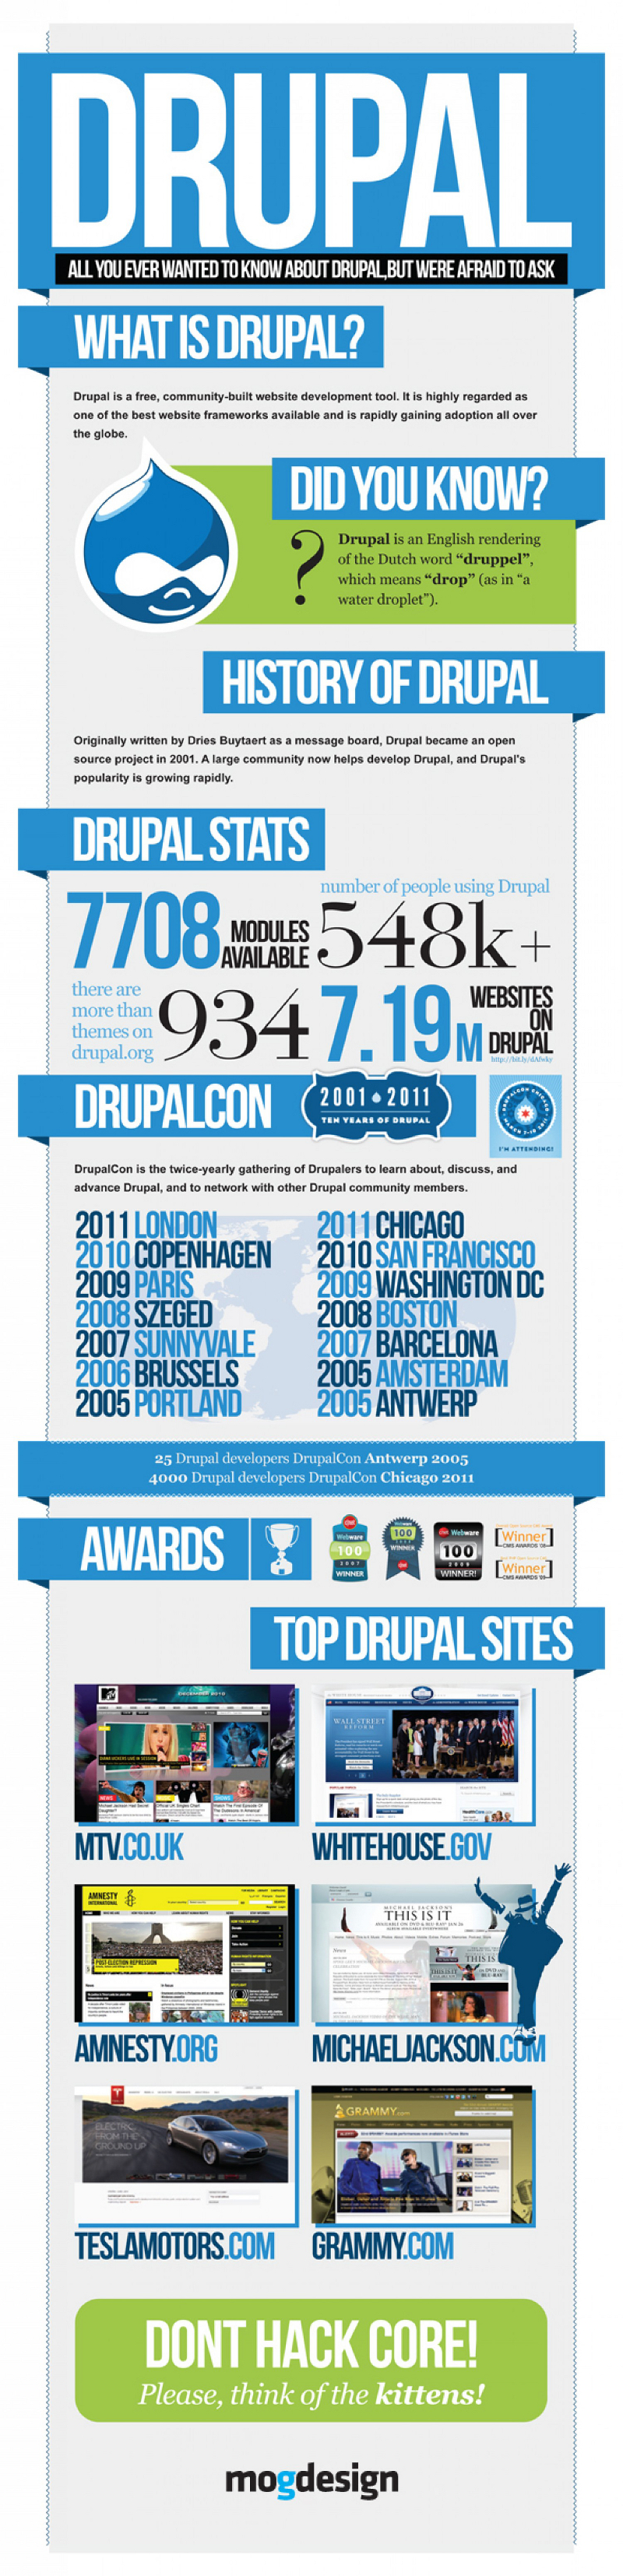 Facts About Drupal